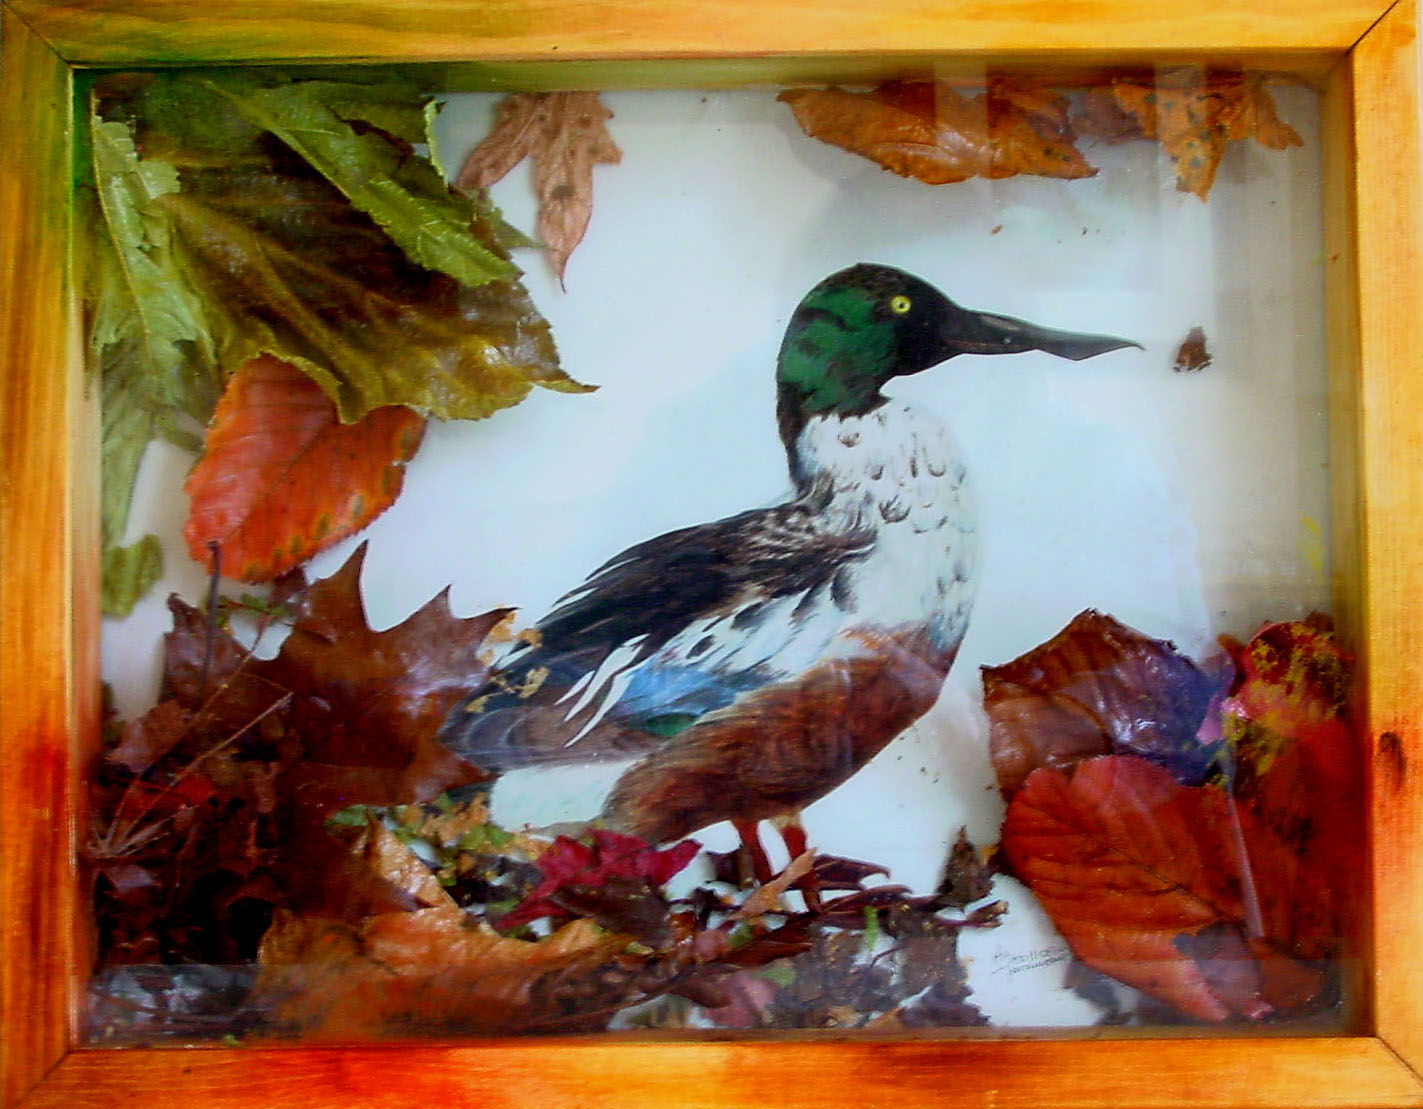 16 - CANARD SAUVAGE - Composition - Mixte - 33 x 45